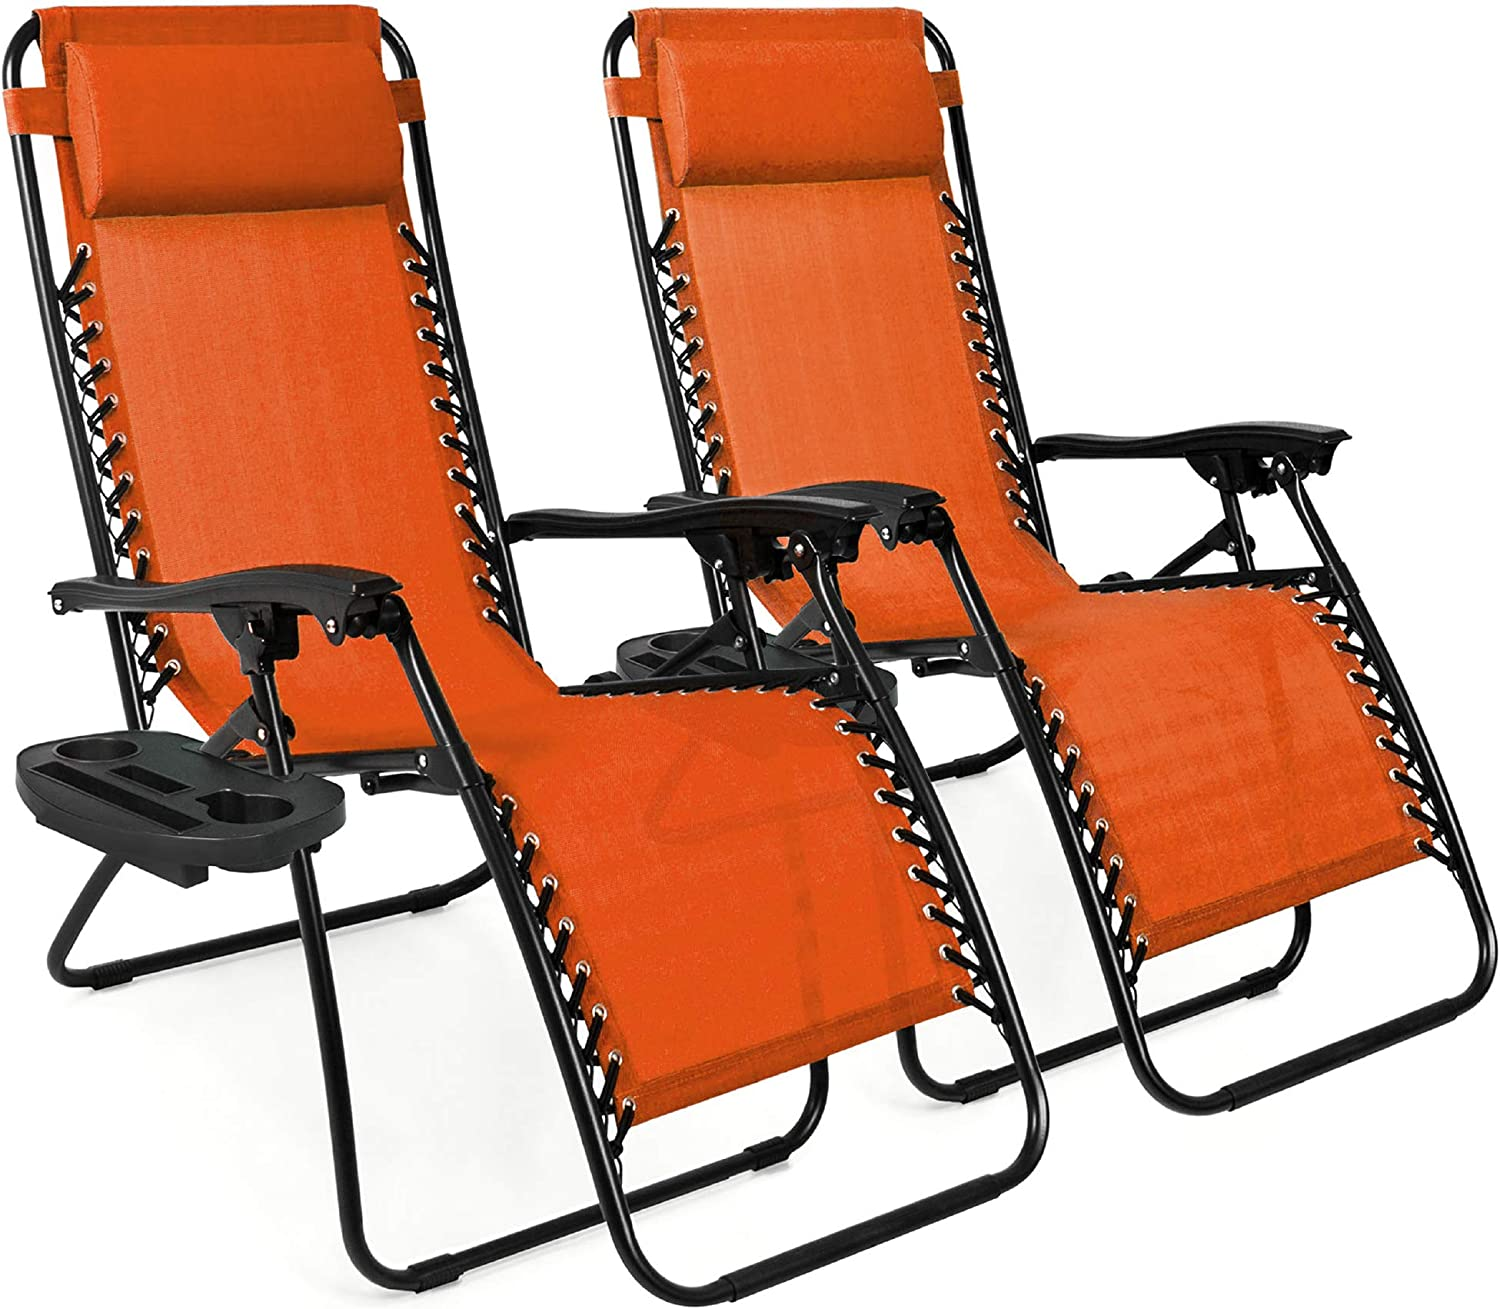 Best Choice Products Set of 2 Adjustable Steel Mesh Zero Gravity Lounge Chair Recliners w/Pillows and Cup Holder Trays - Burnt Orange